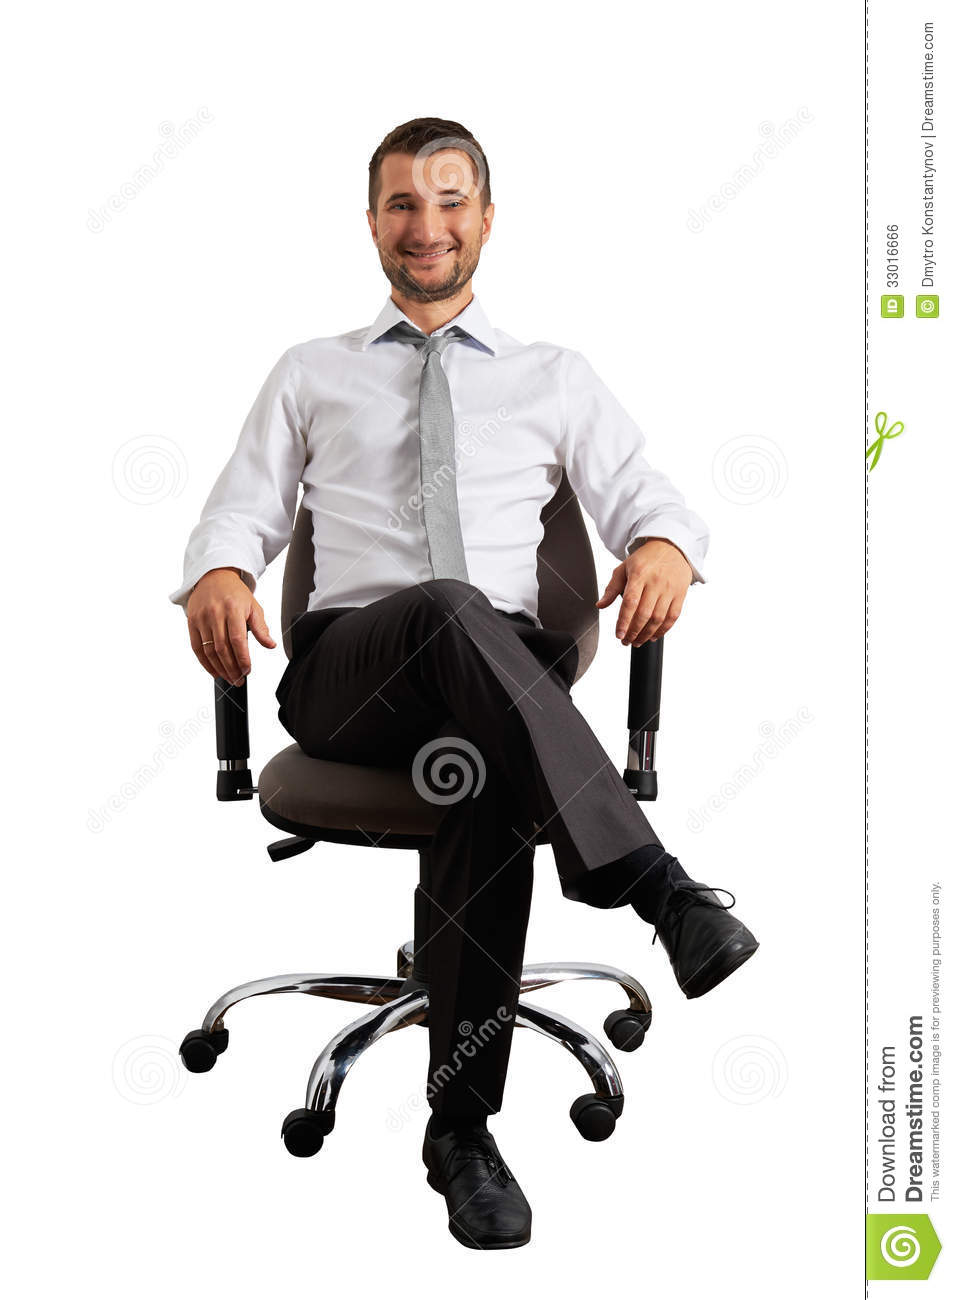 Man Sitting On Office Chair And Smiling Stock Photo